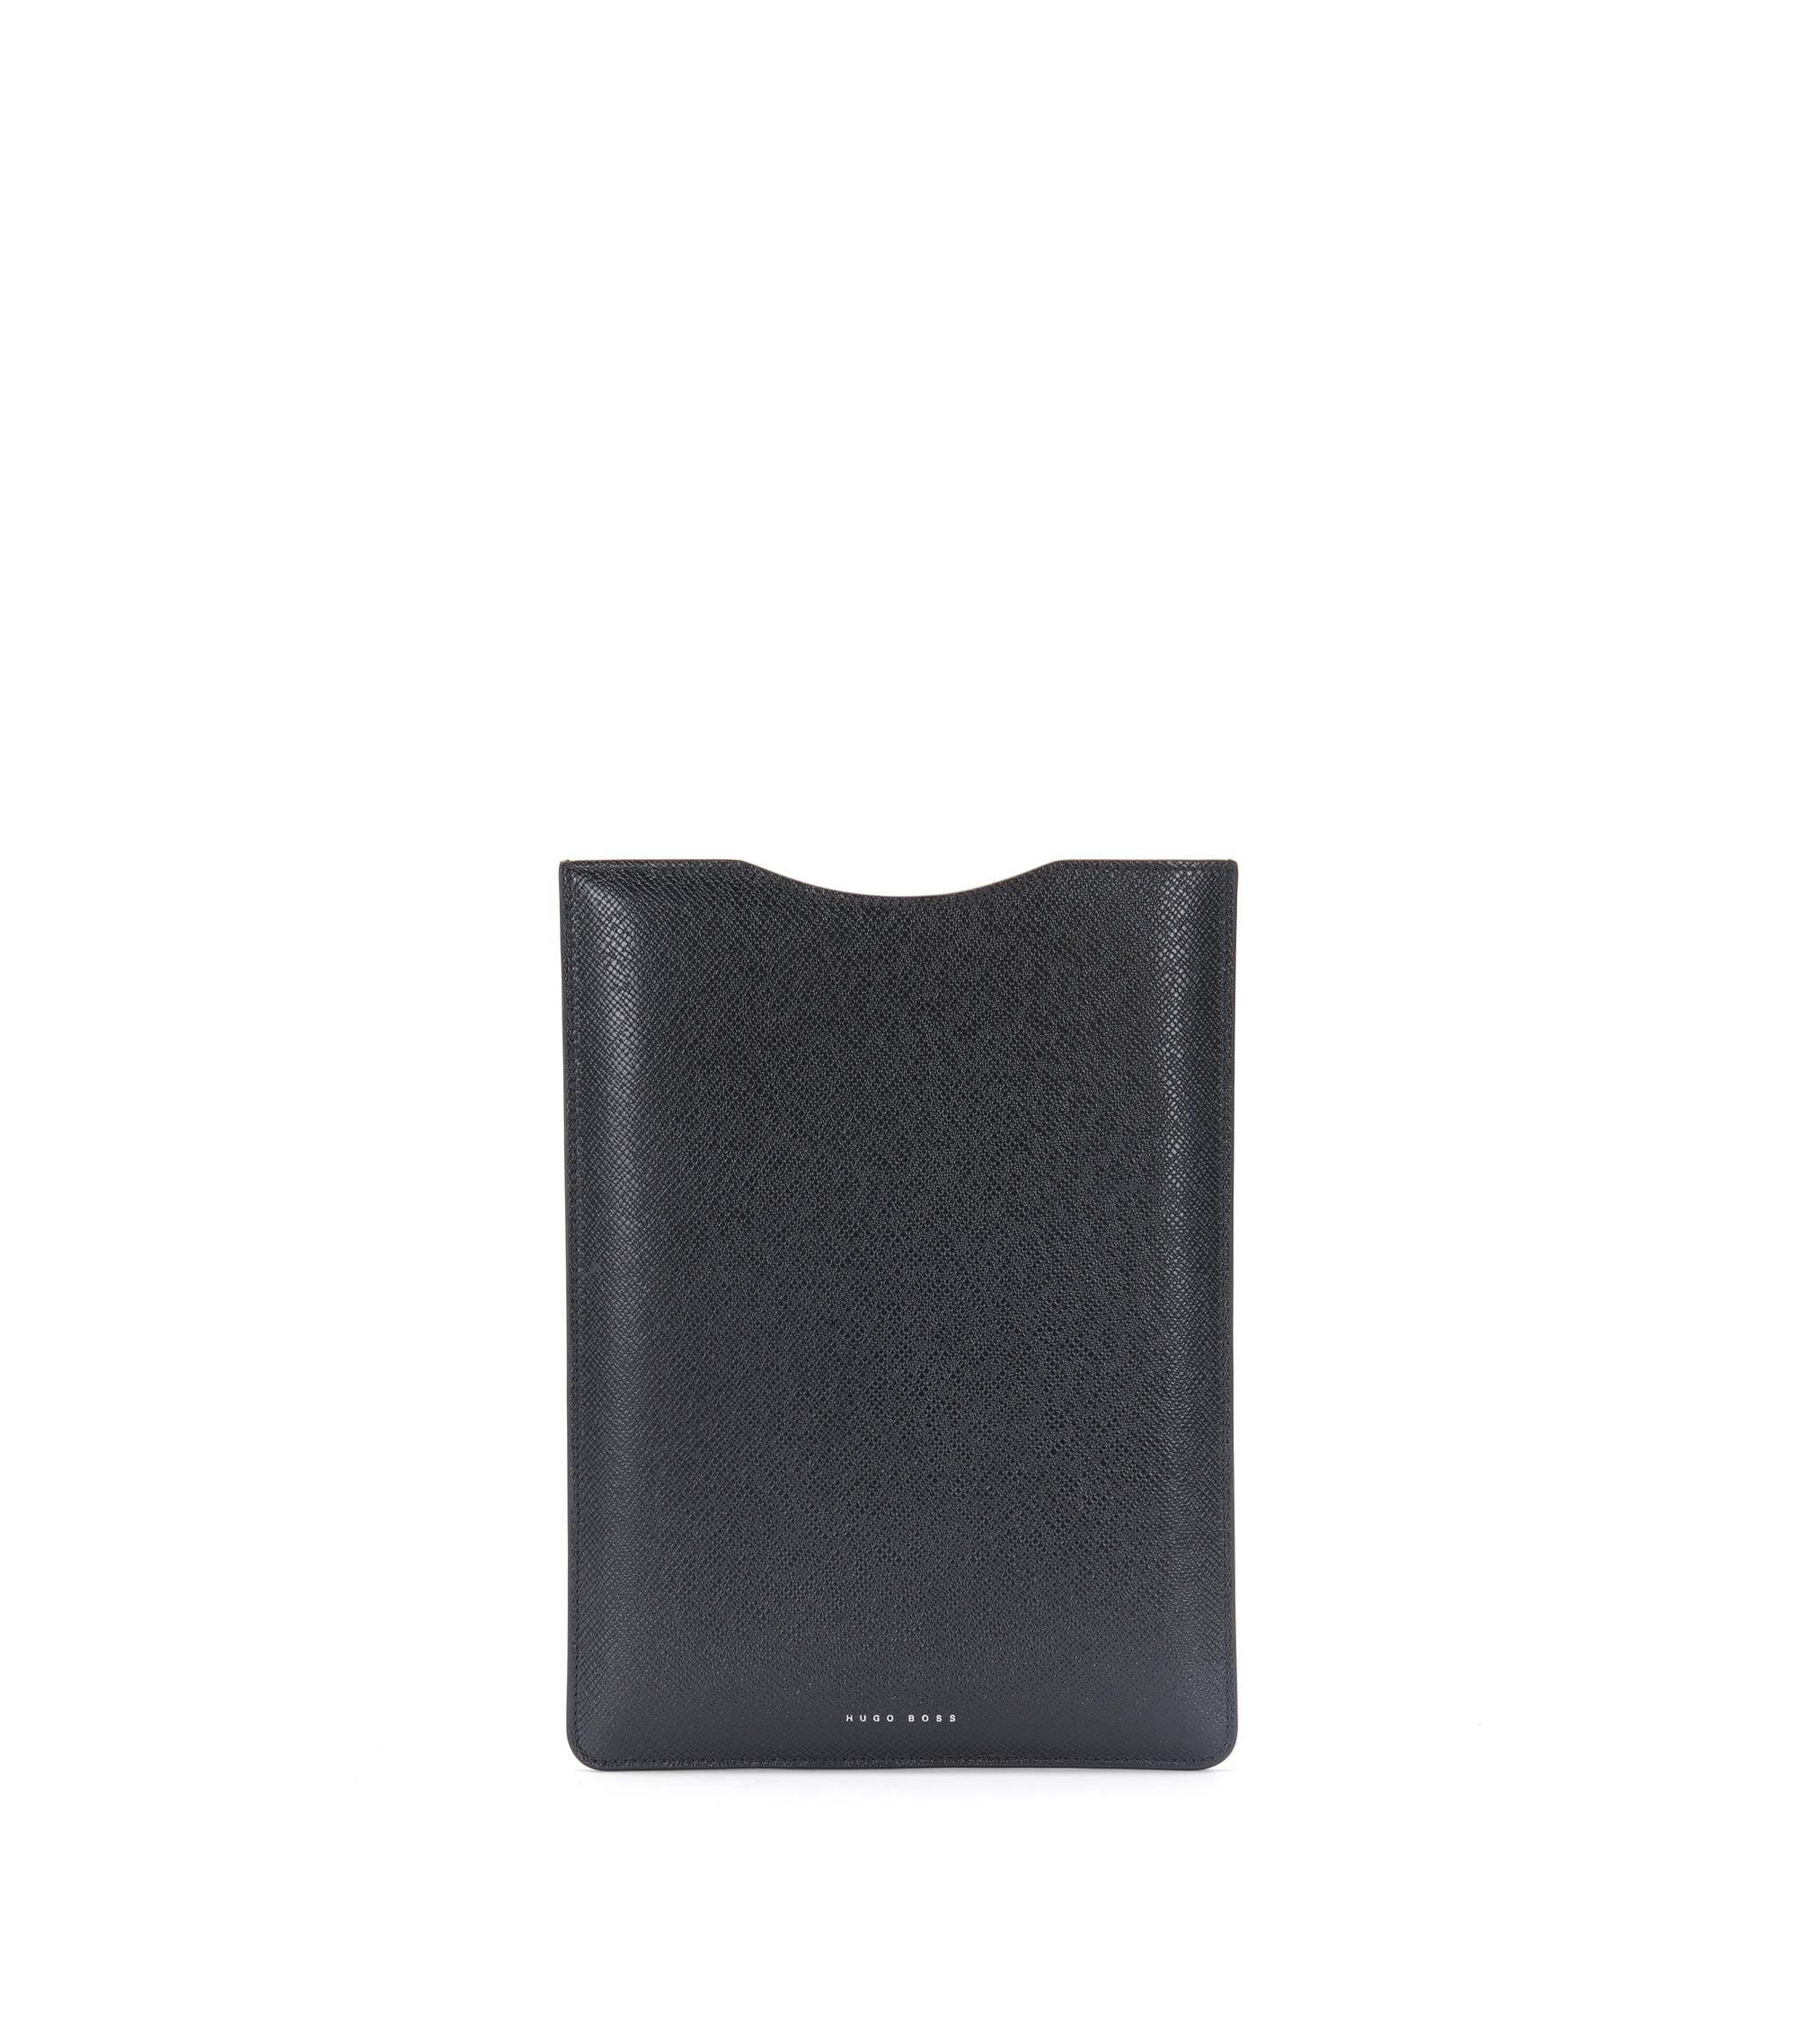 Leather Embossed Tablet Sleeve | Signature Tablet, Black